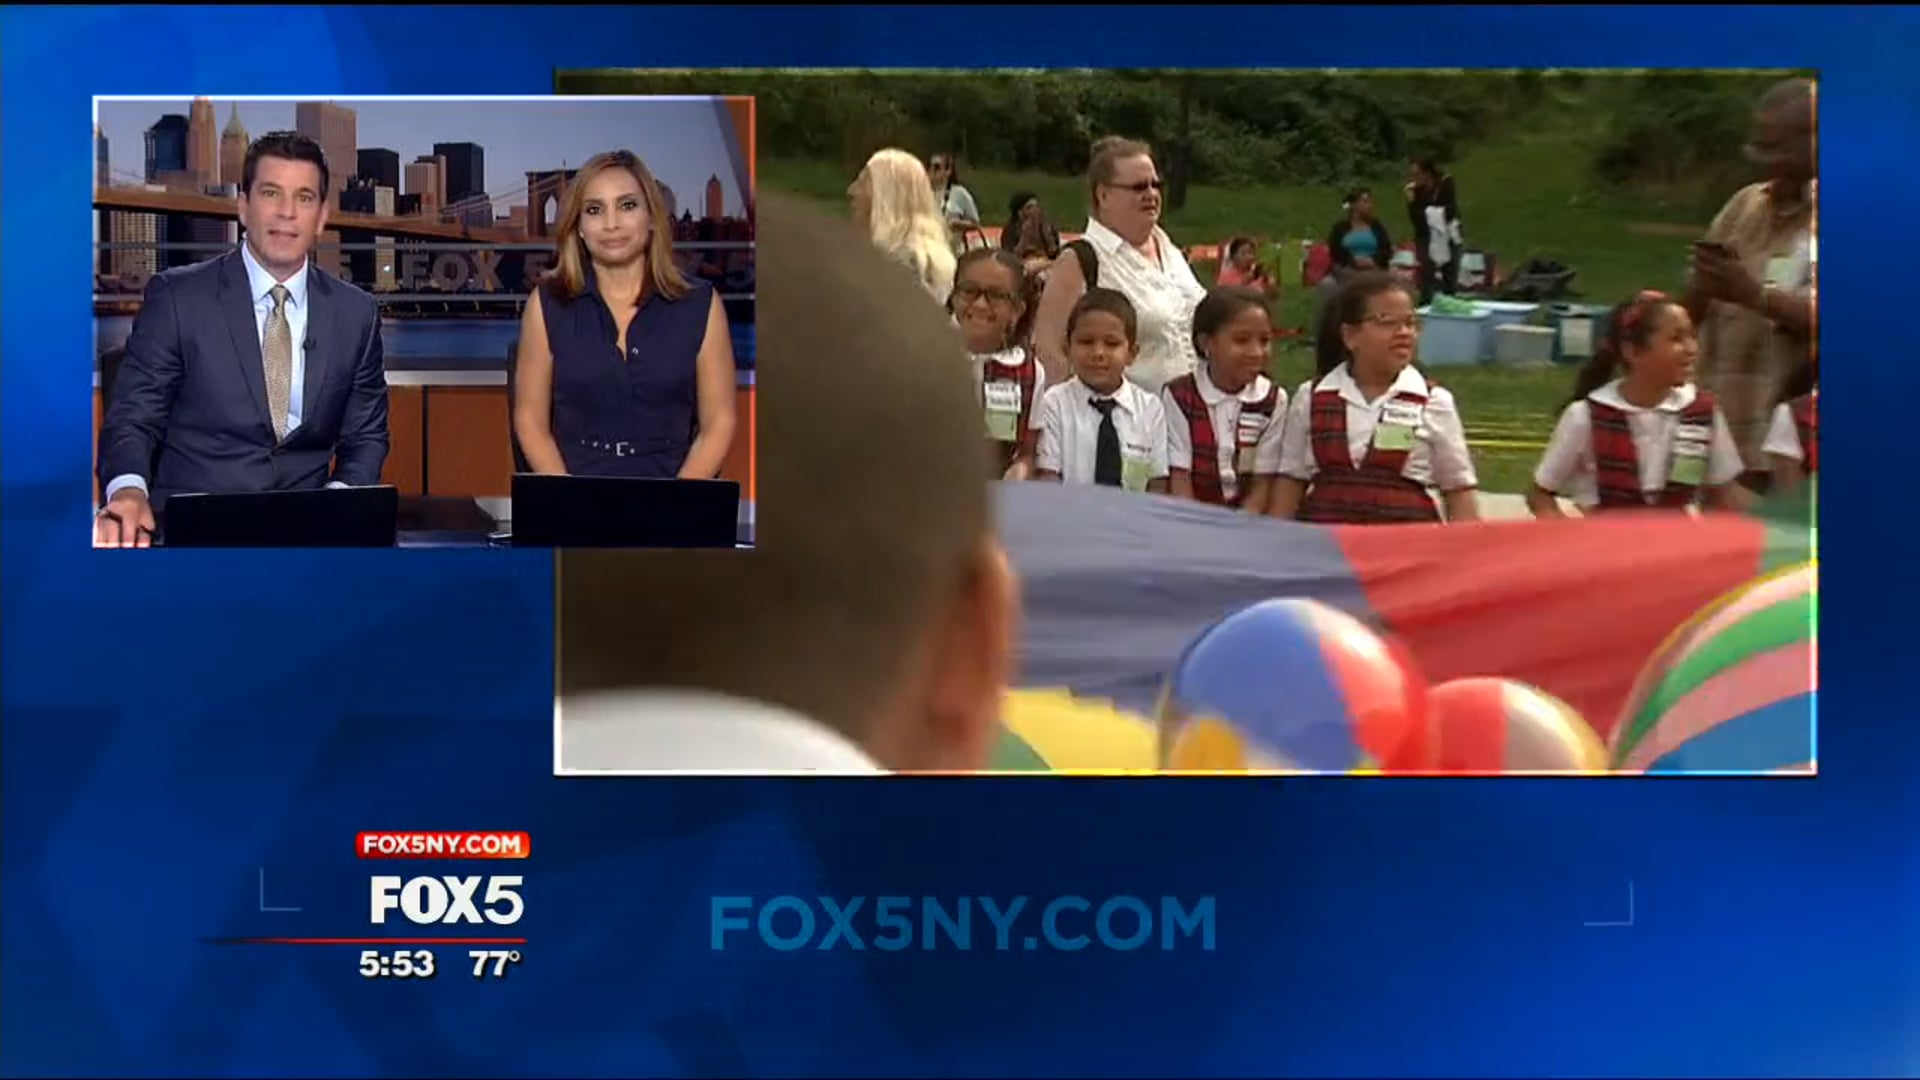 WNYW-TV News report on Francis in the Schools event in New York City